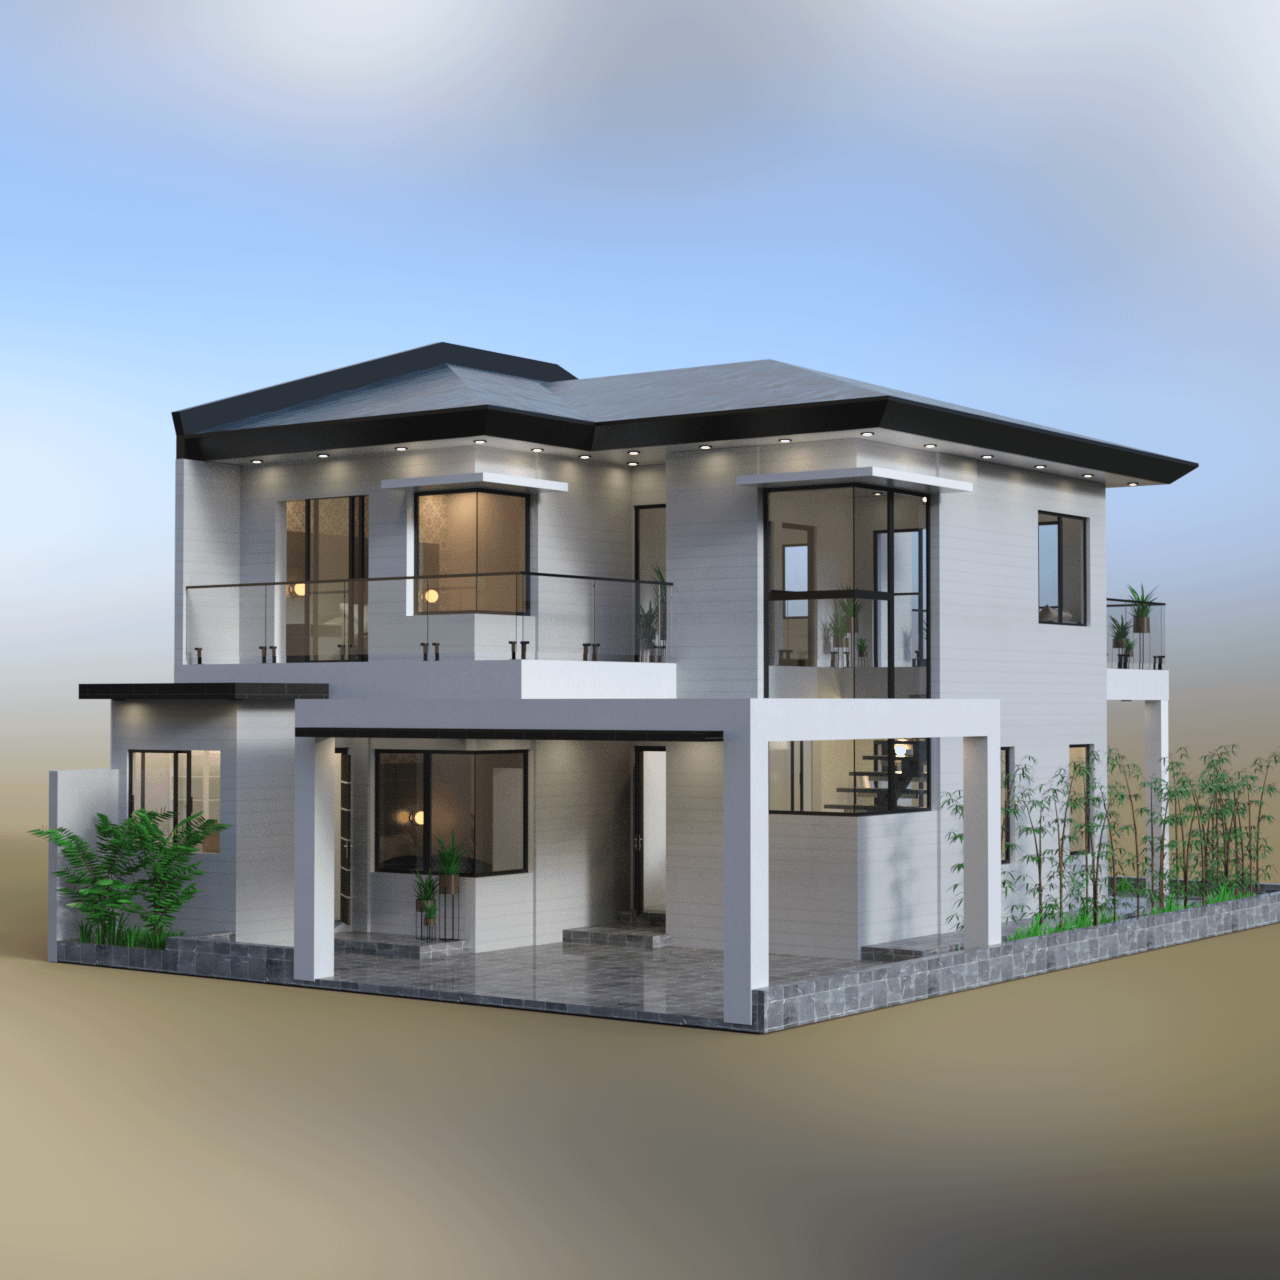 Outside view of the vacation house 3d model